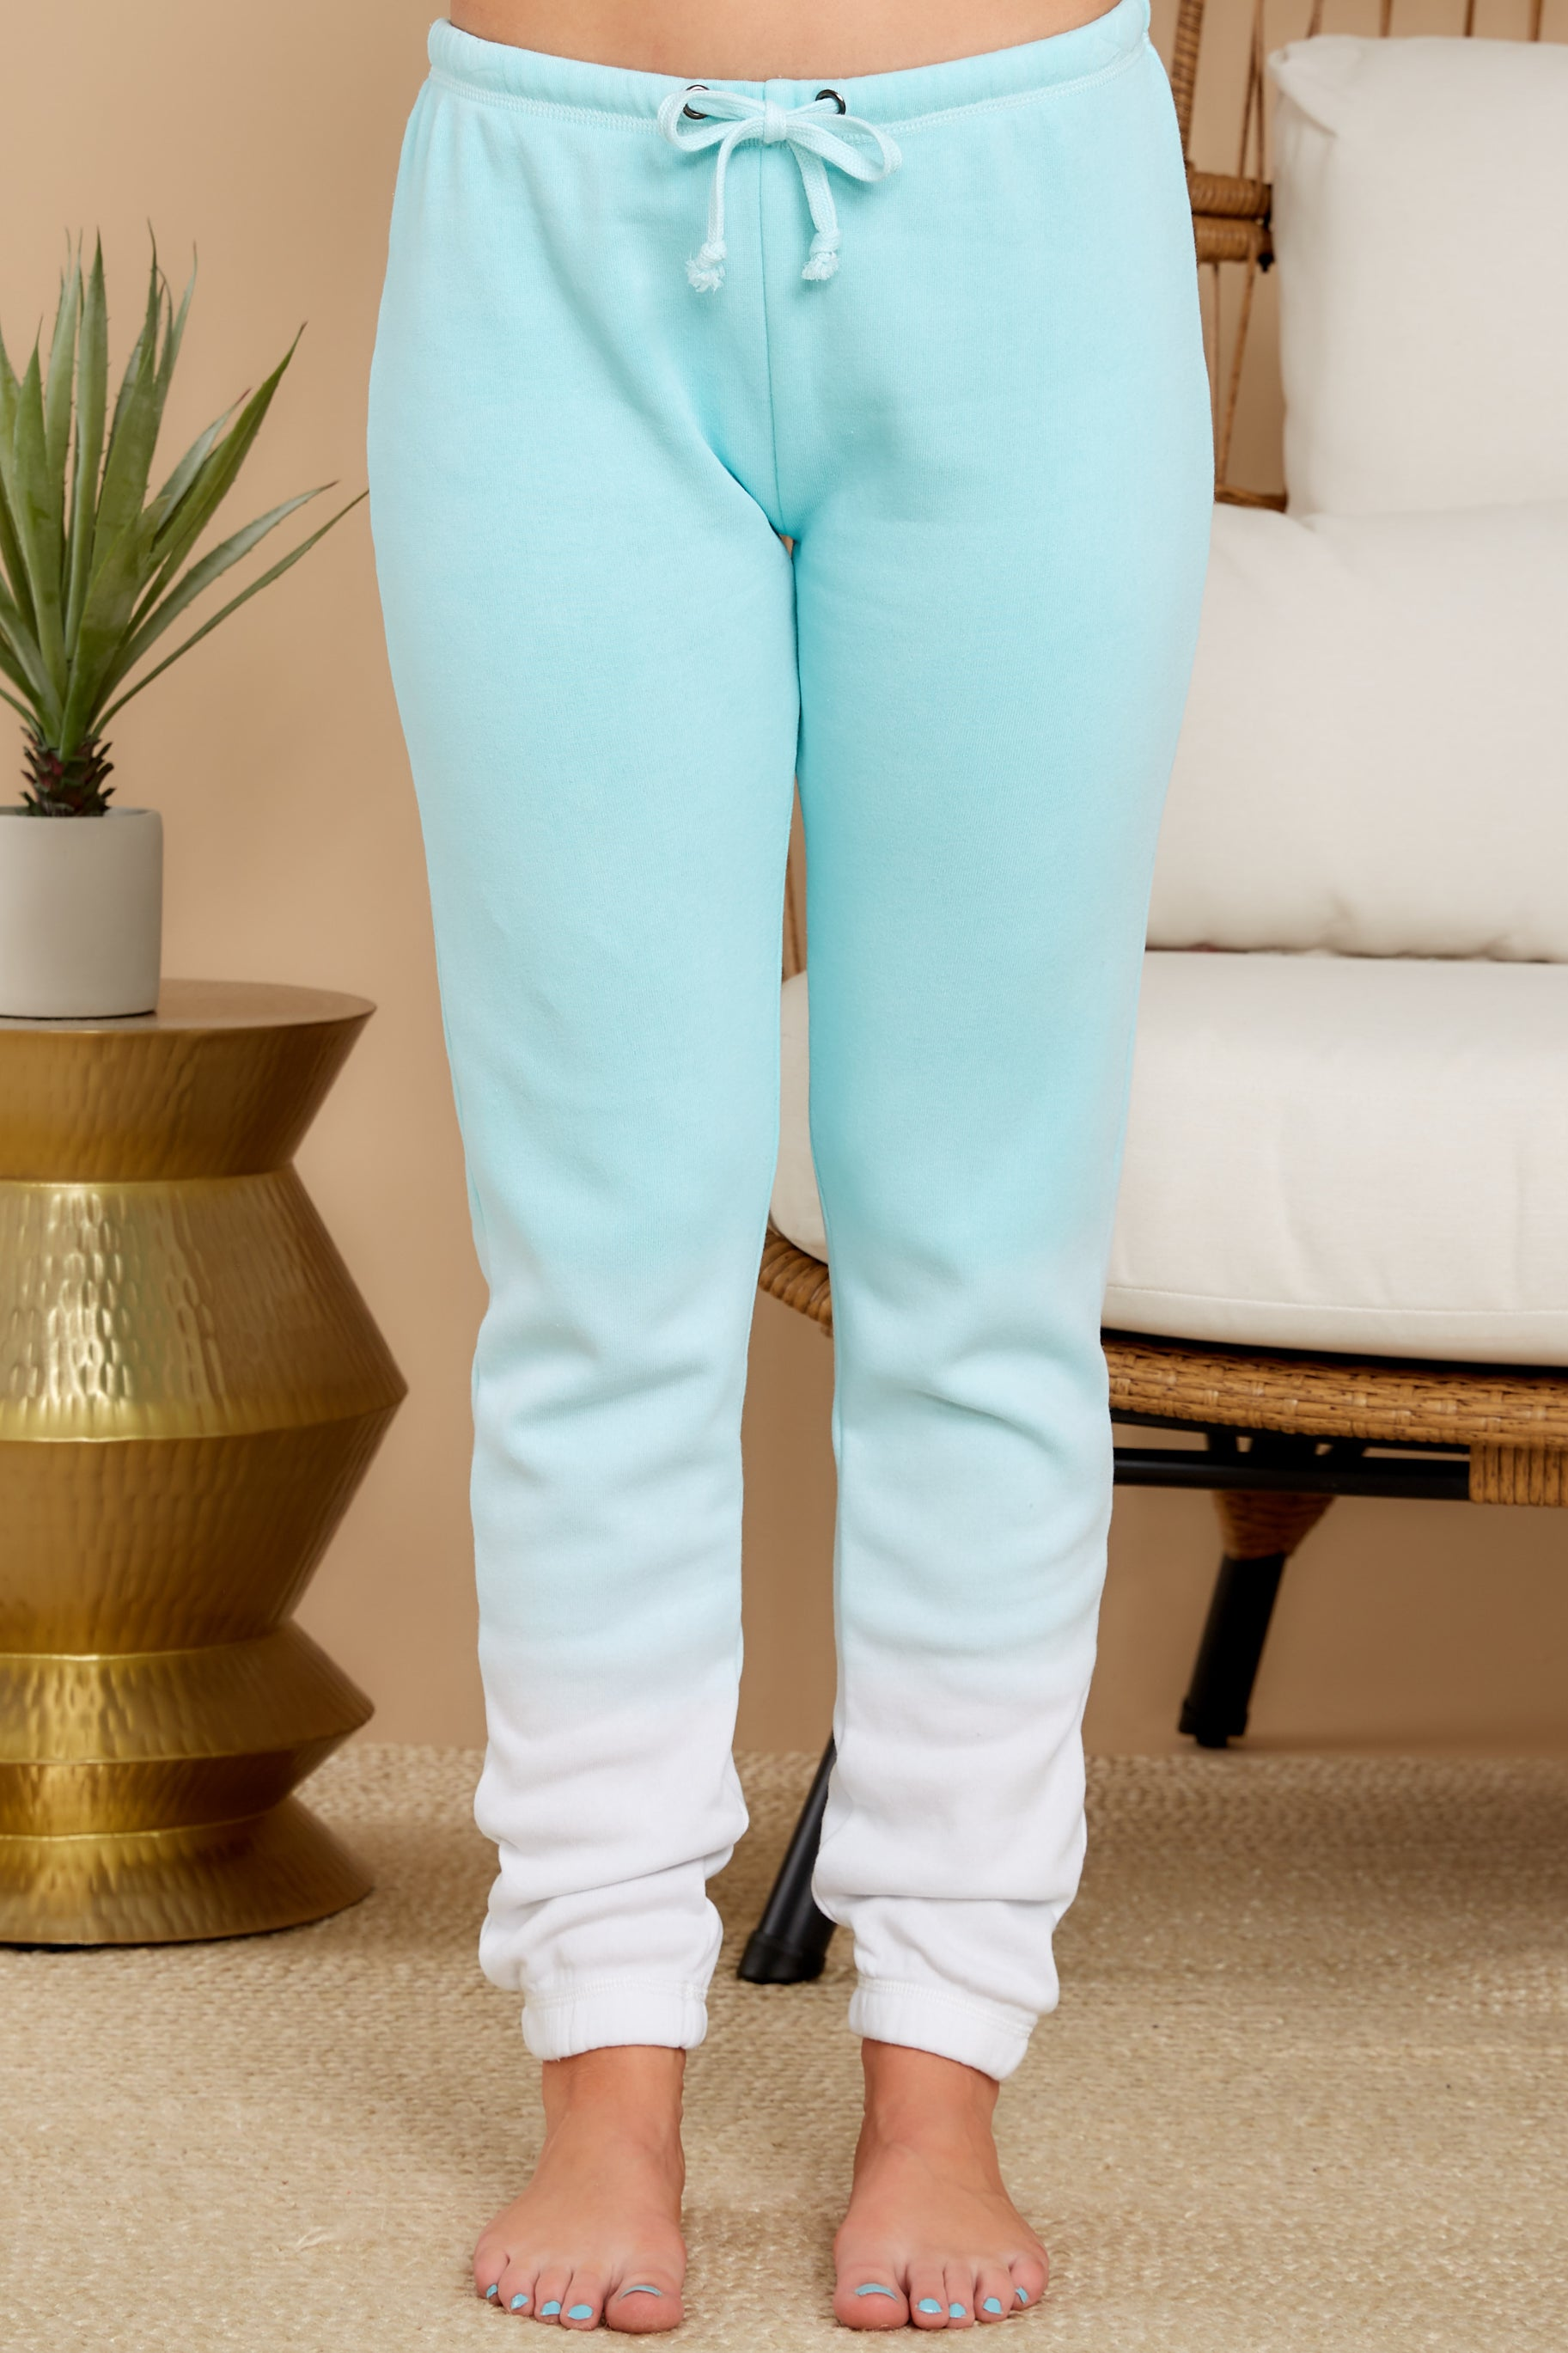 2 Feels Like Heaven Atlantis Blue Ombre Joggers at reddress.com